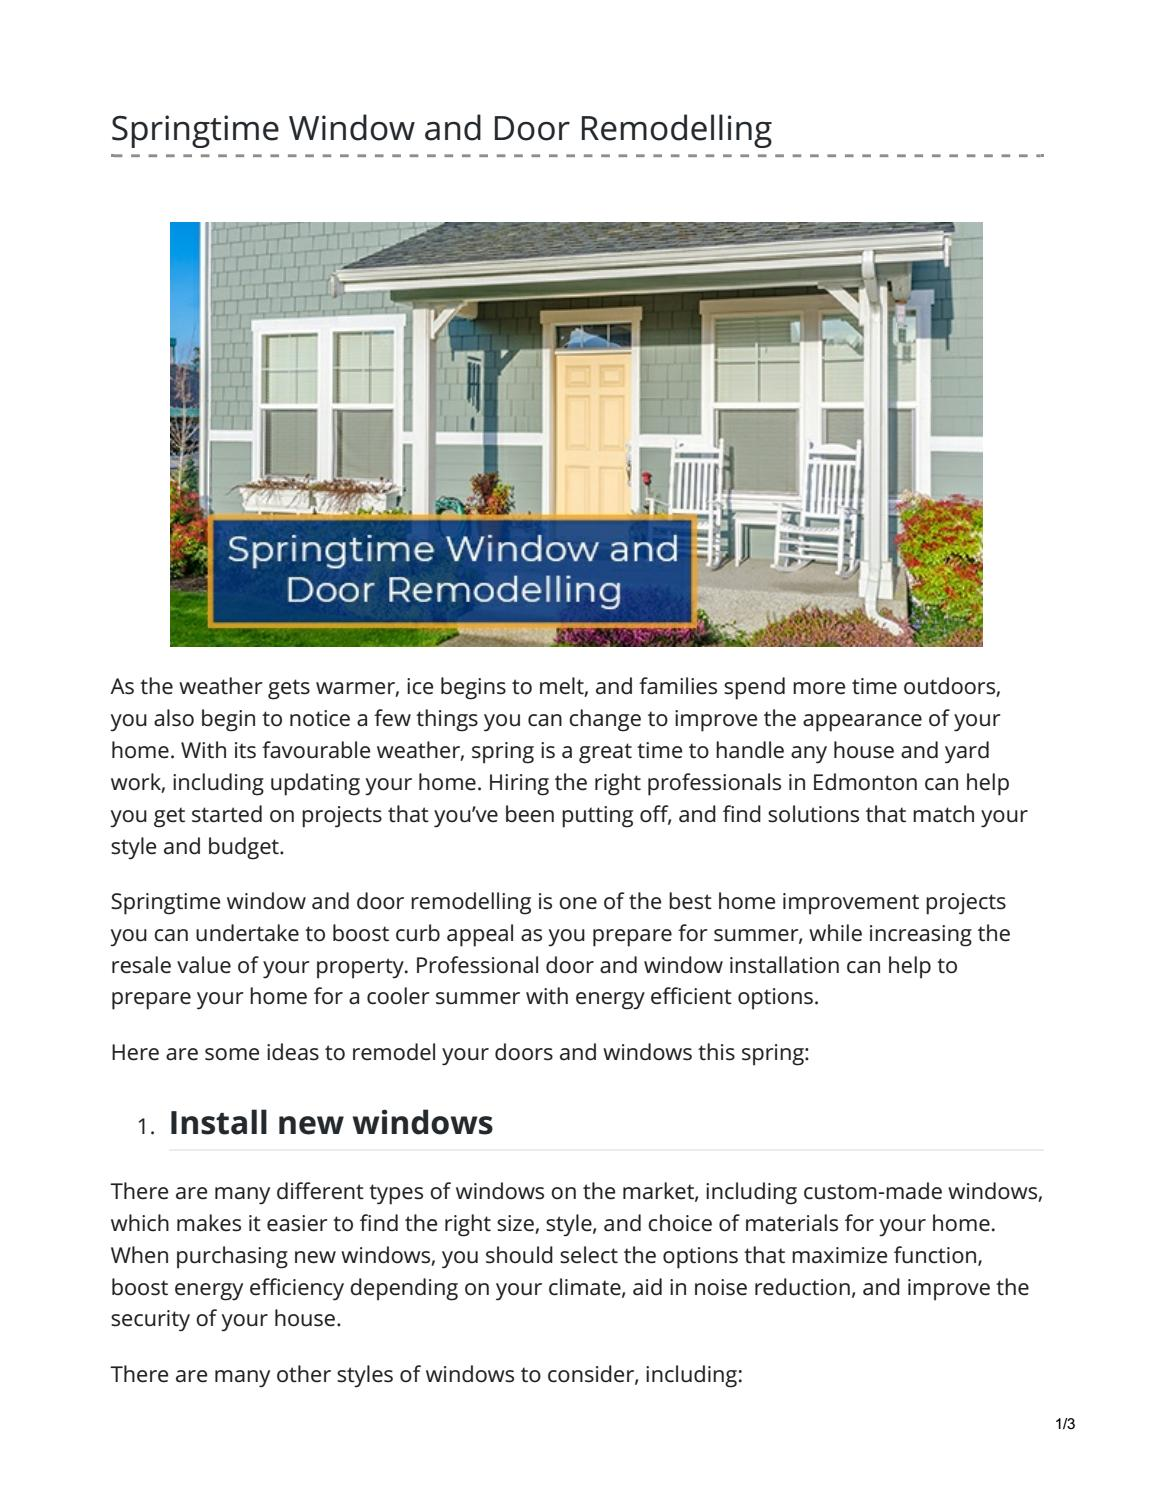 Springtime Windows And Door Remodelling By Kenneth Williams